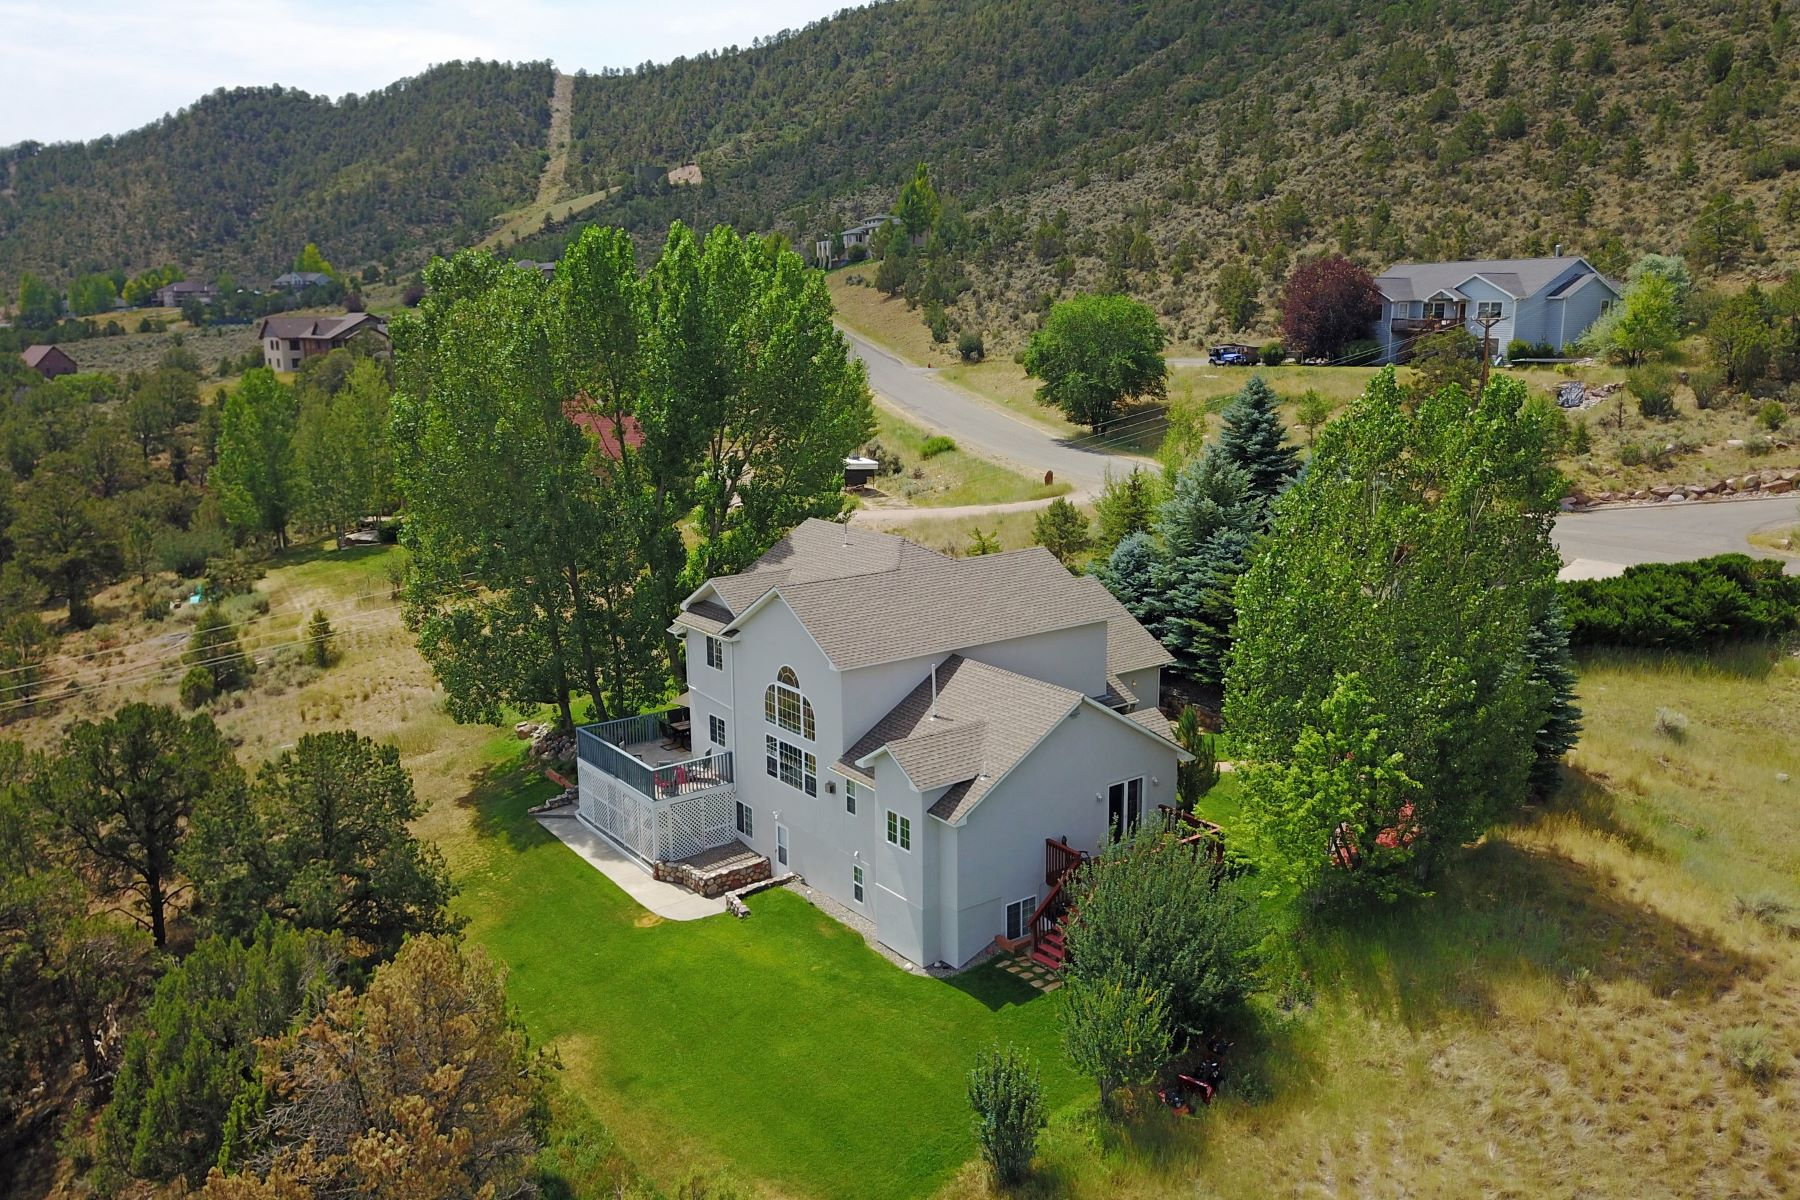 Single Family Home for Sale at On the Mesas of Westbank Ranch 1135 Huebinger Dr Glenwood Springs, Colorado, 81601 United States